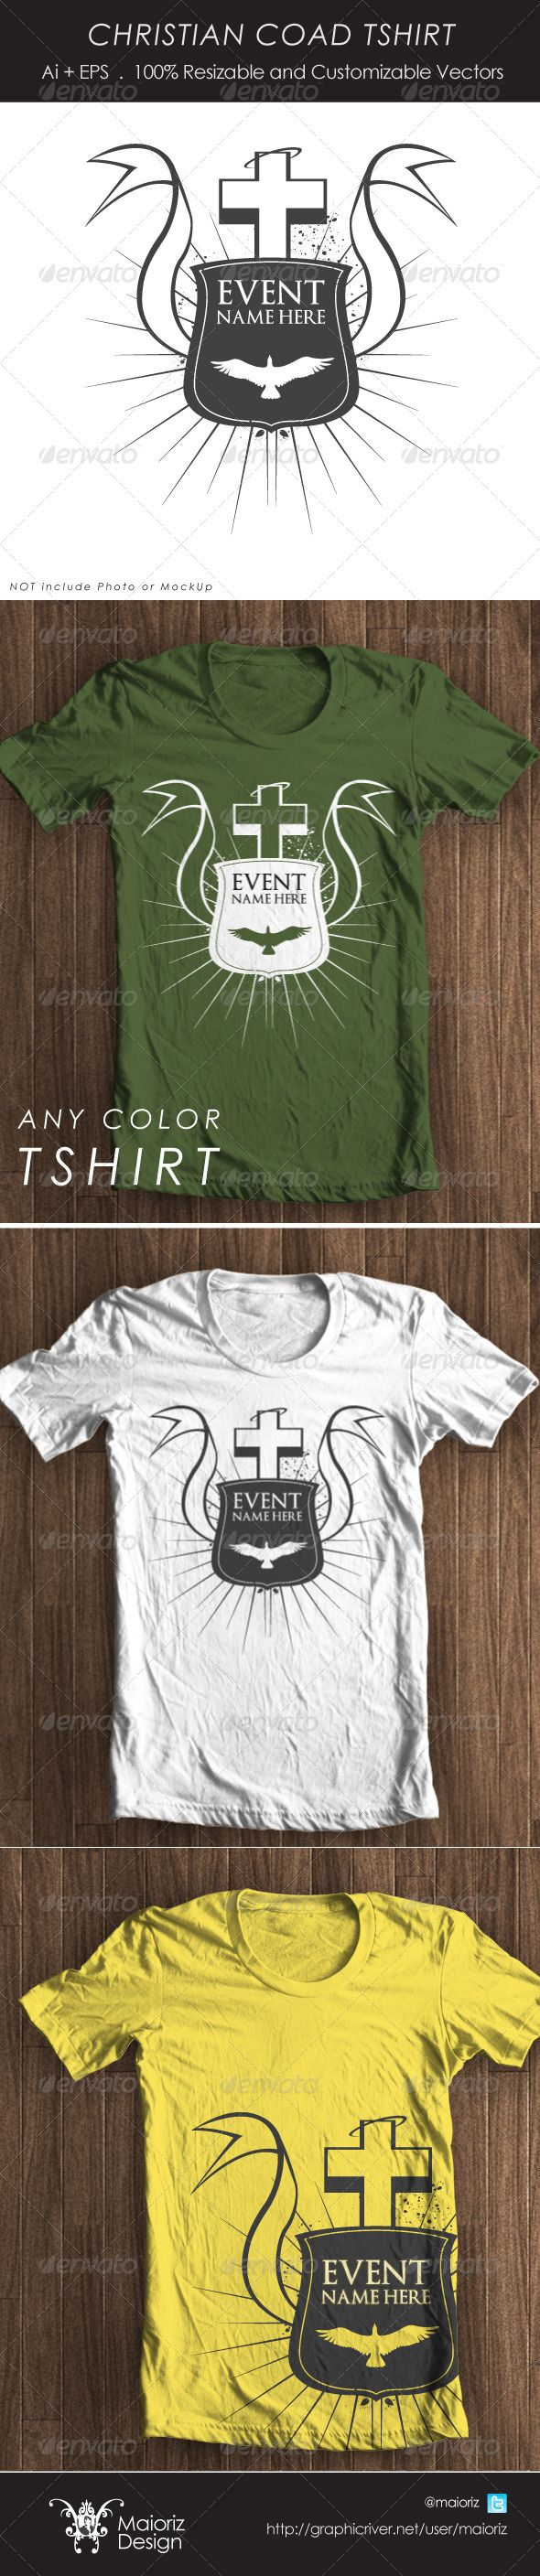 Shirt design template size - Amazing T Shirt Design With Chruch Event Team Or Promoting Staff 100